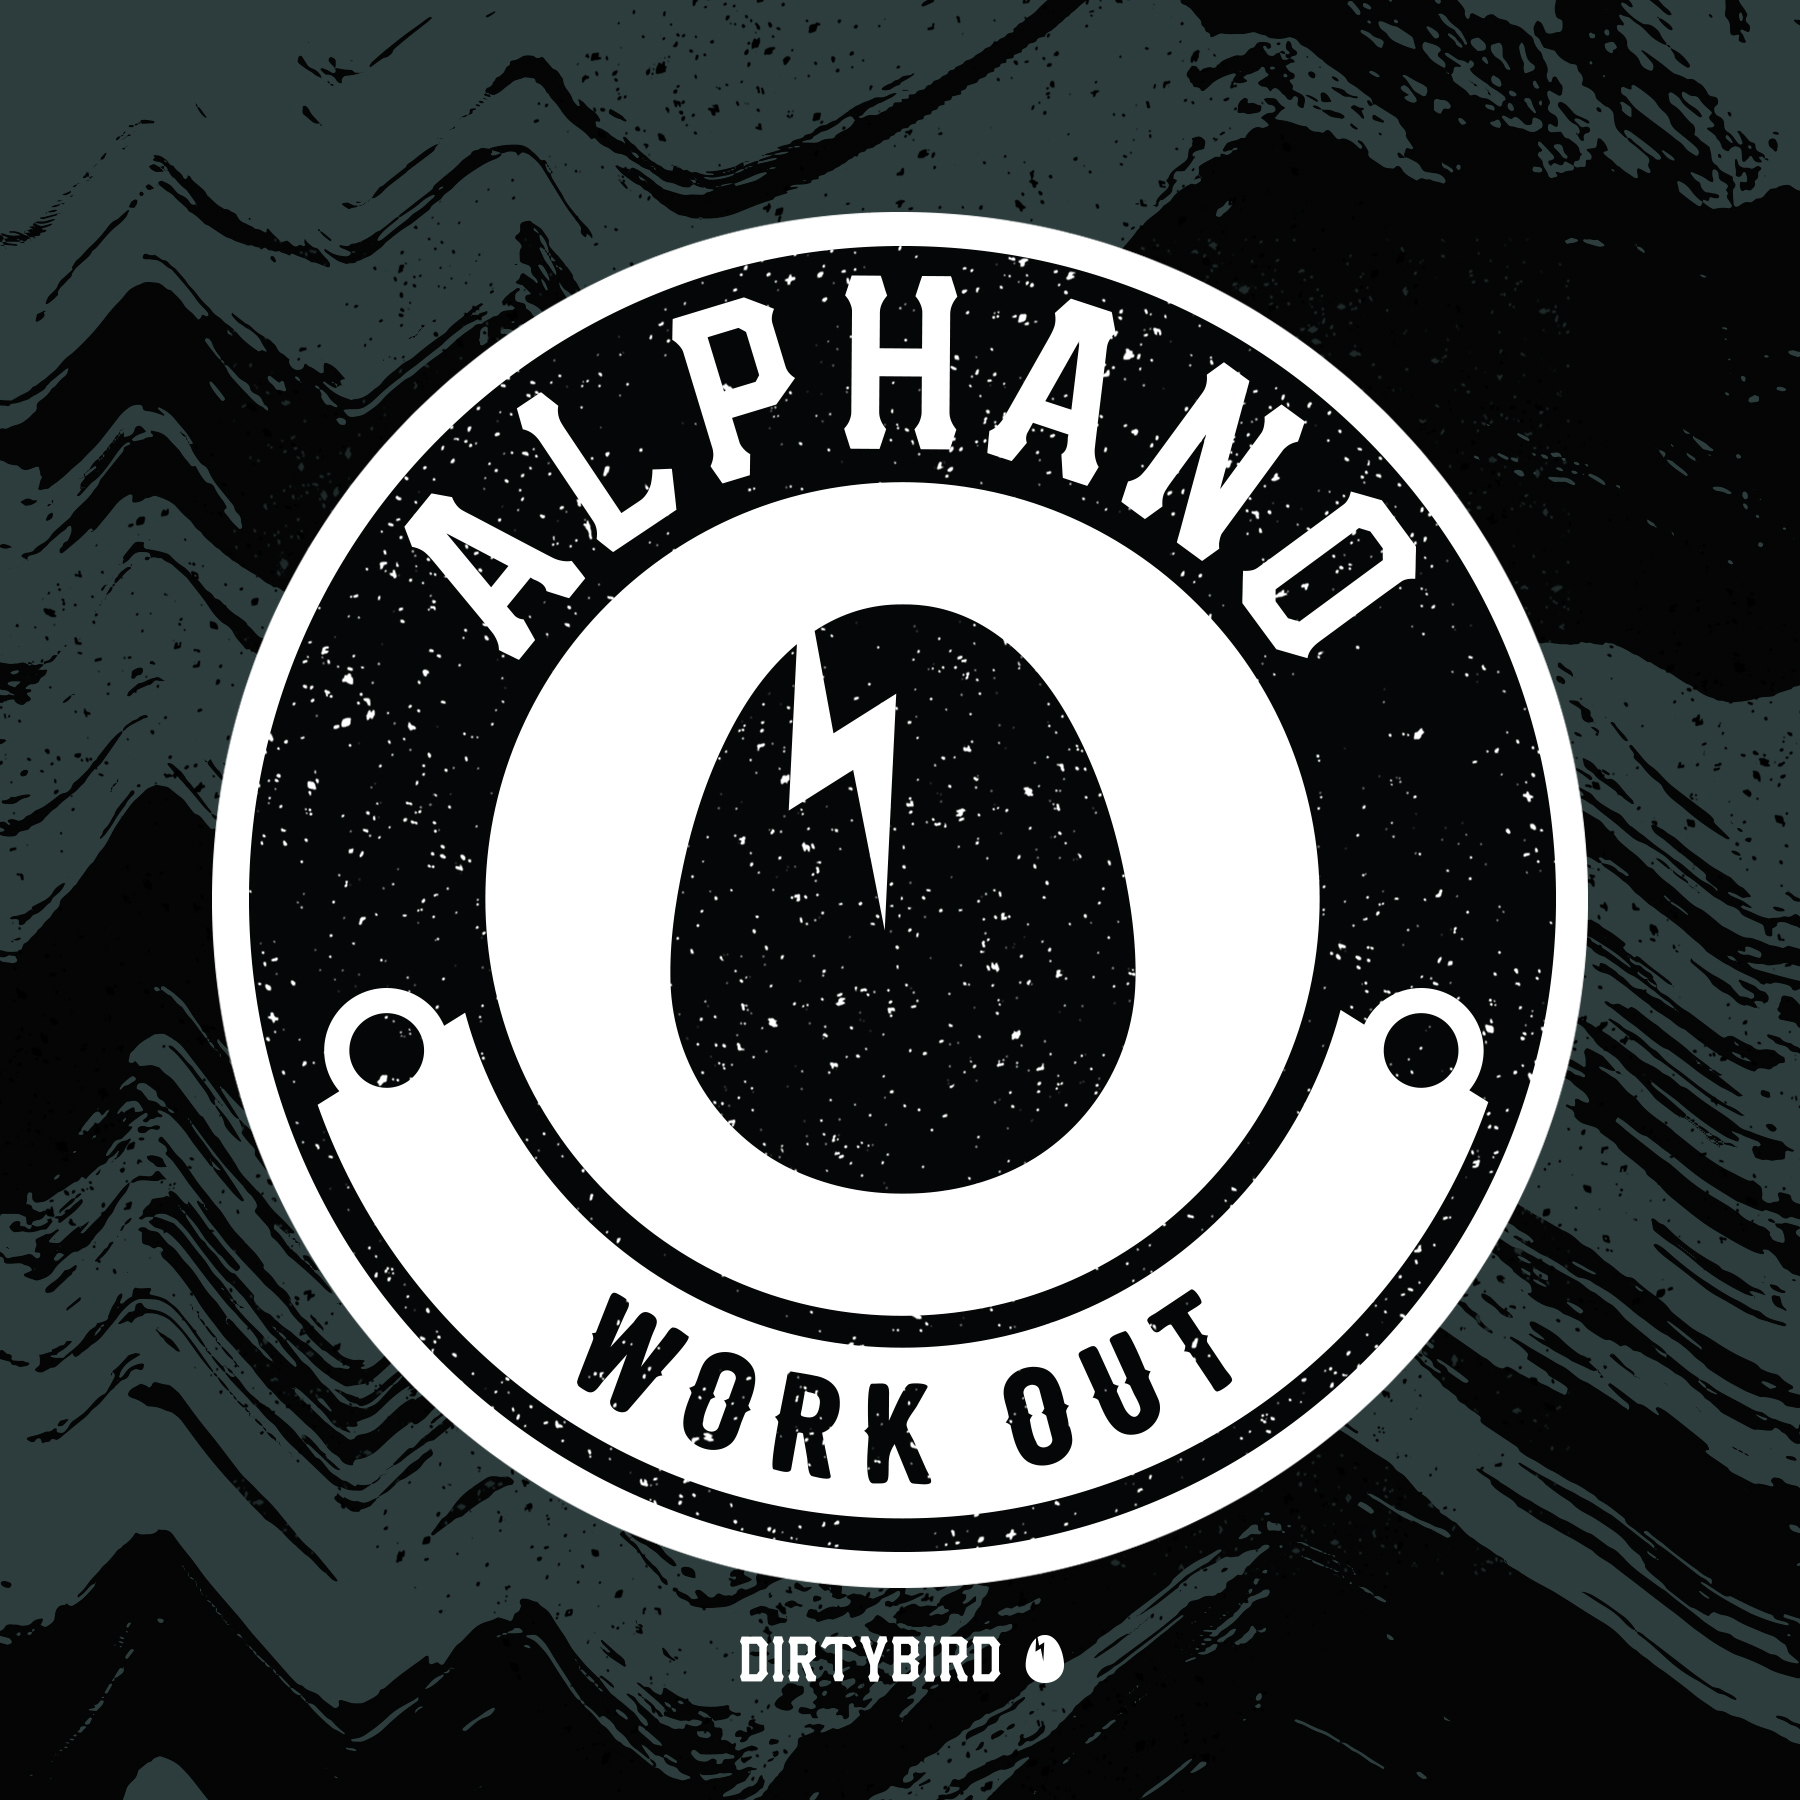 Birdfeed alphano workout